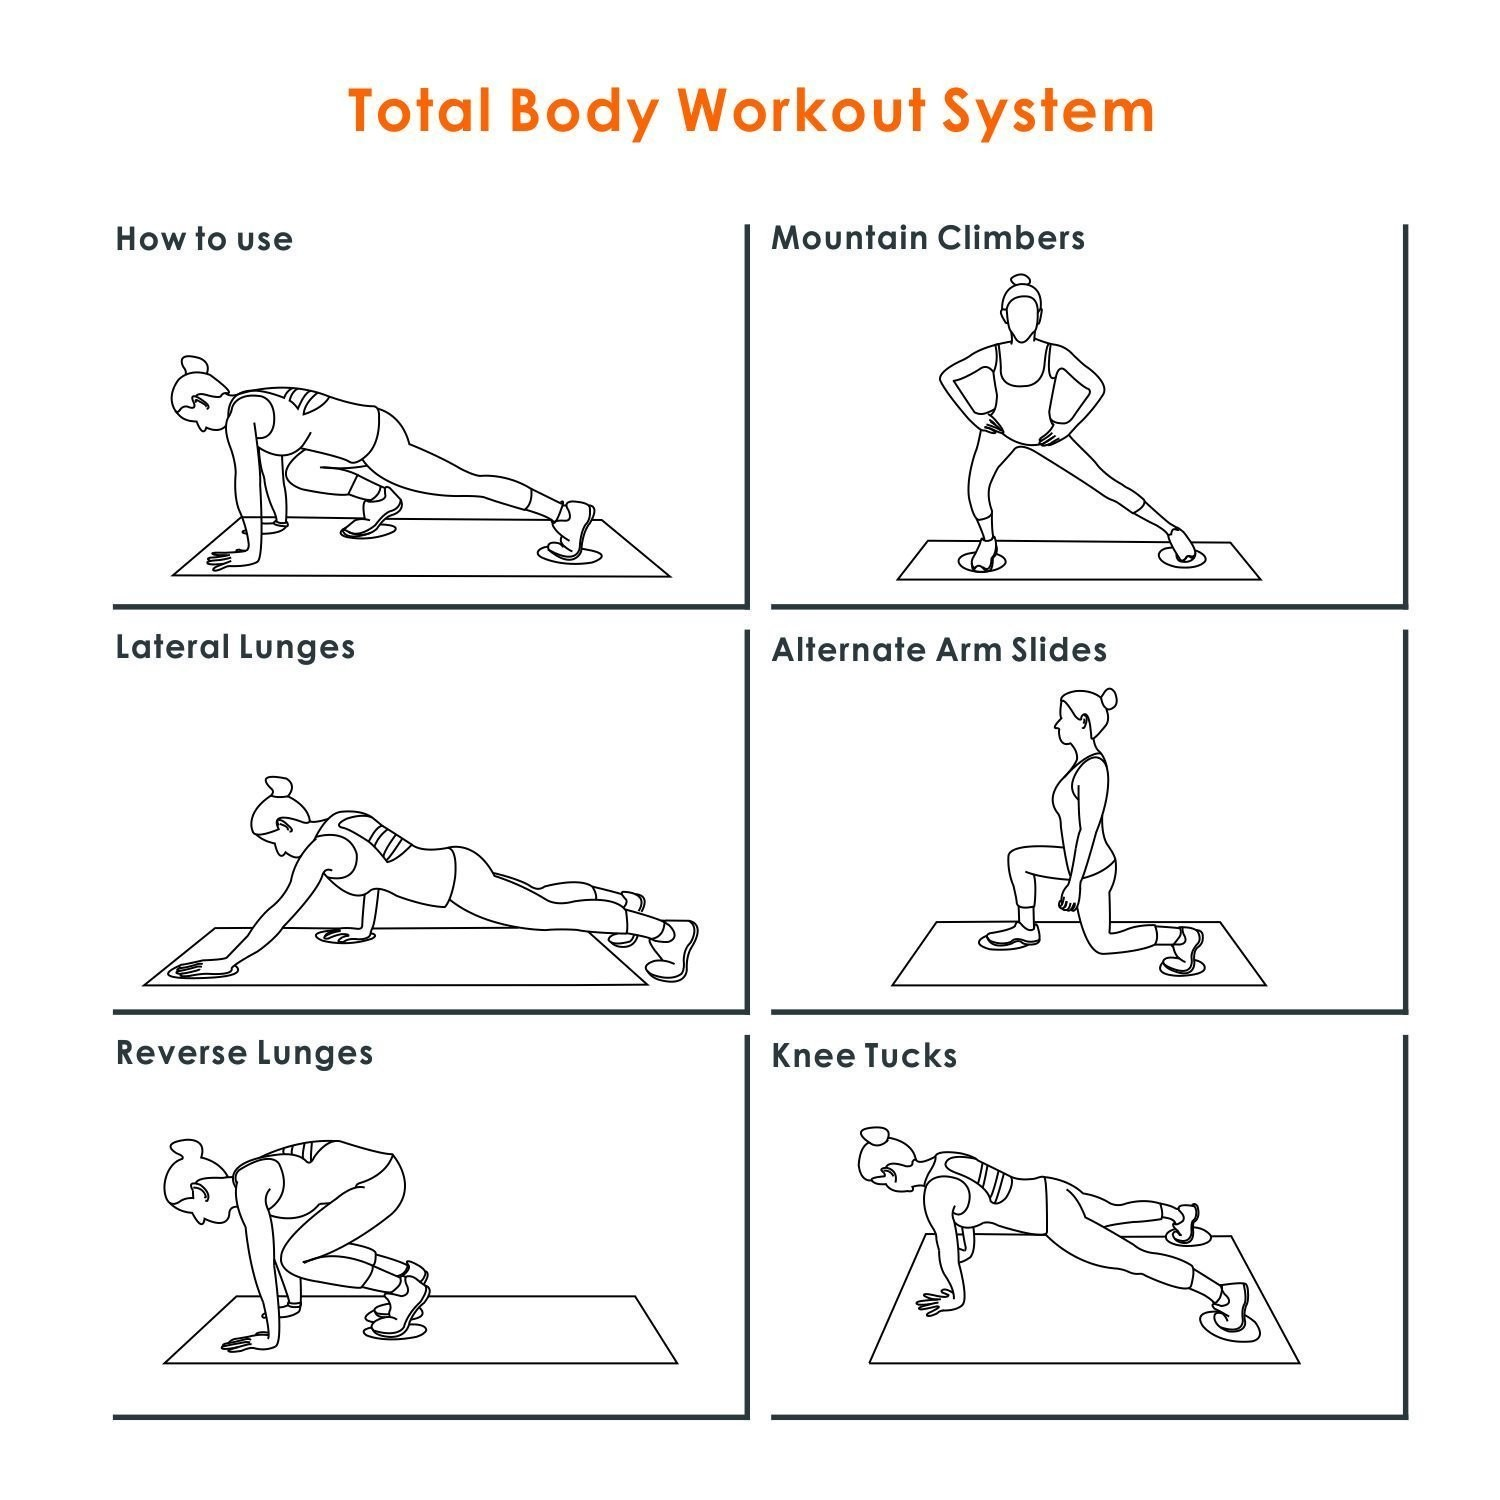 Total Body Workout System